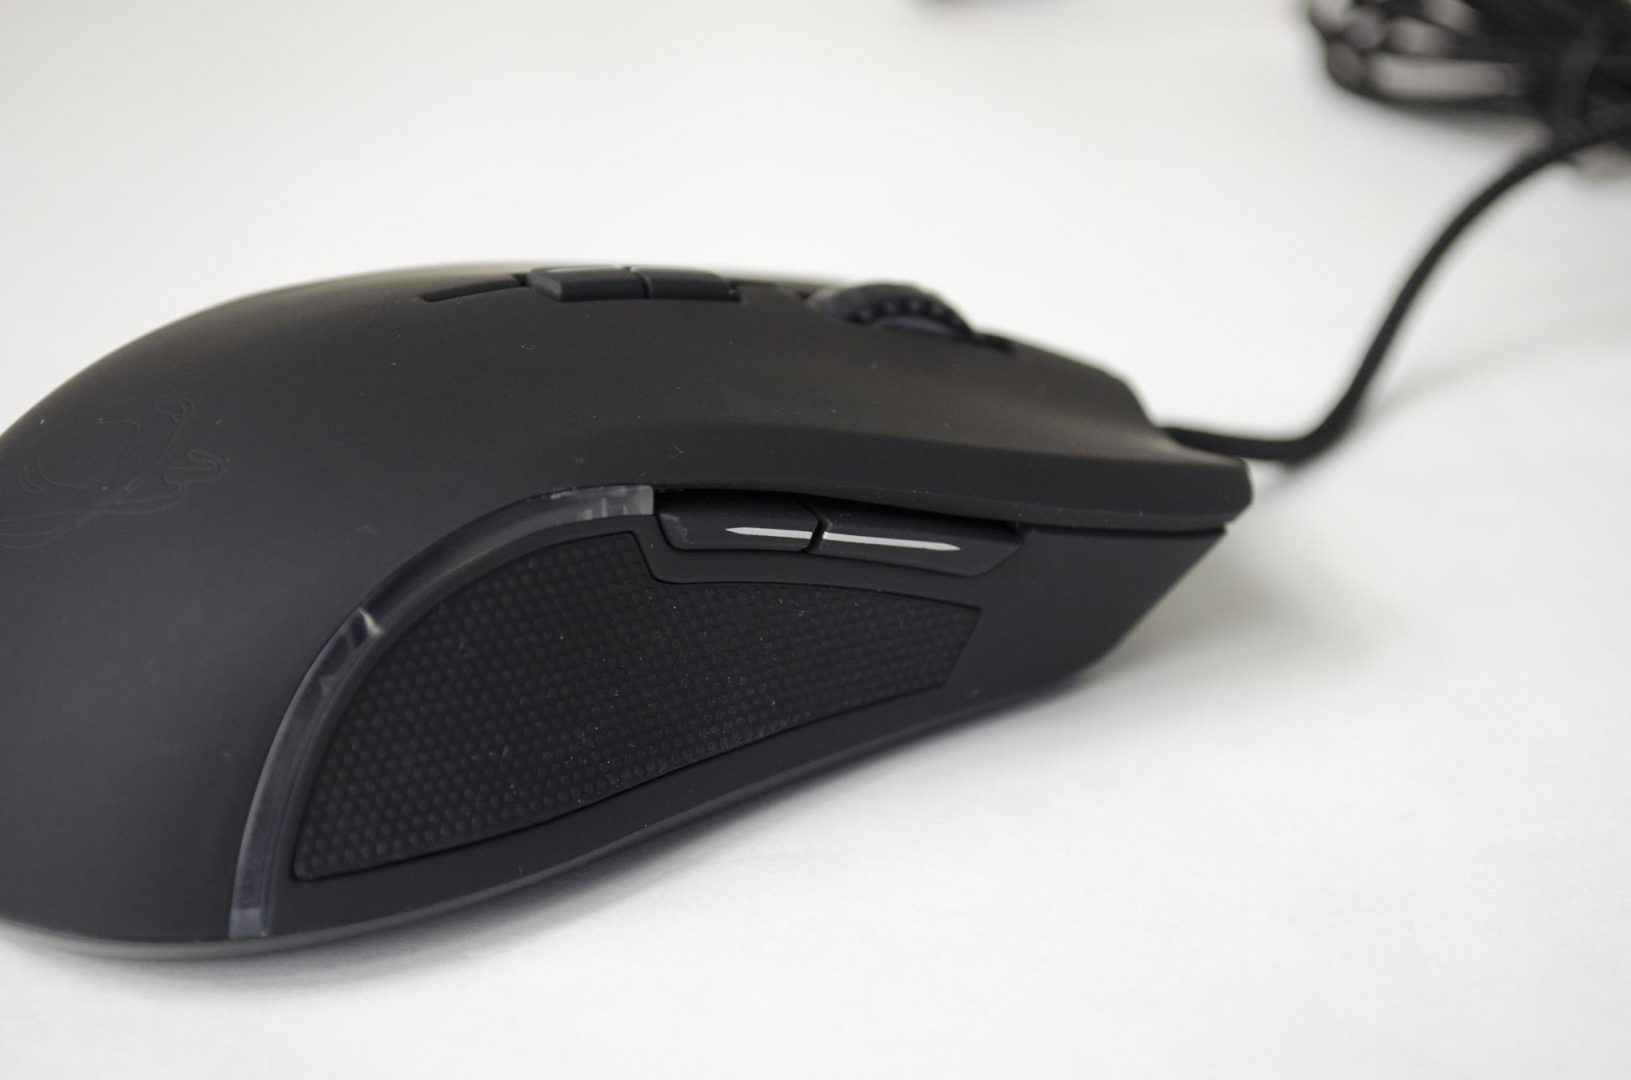 Ozone Argon Gaming Mouse review_5